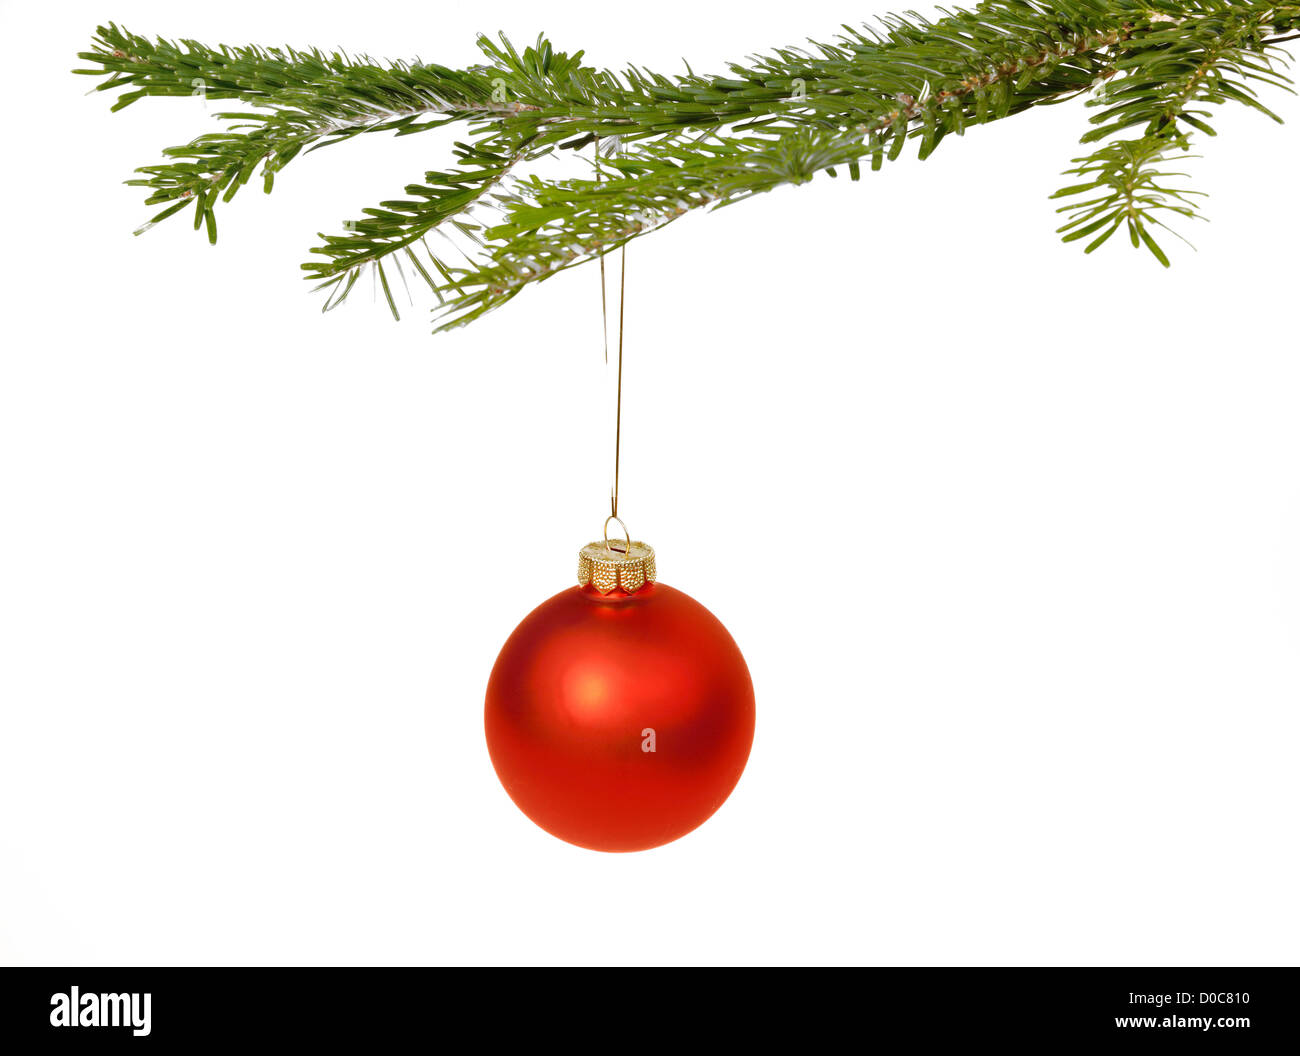 Red Christmas decorations hanging from a pine branch - isolated on white background - Stock Image